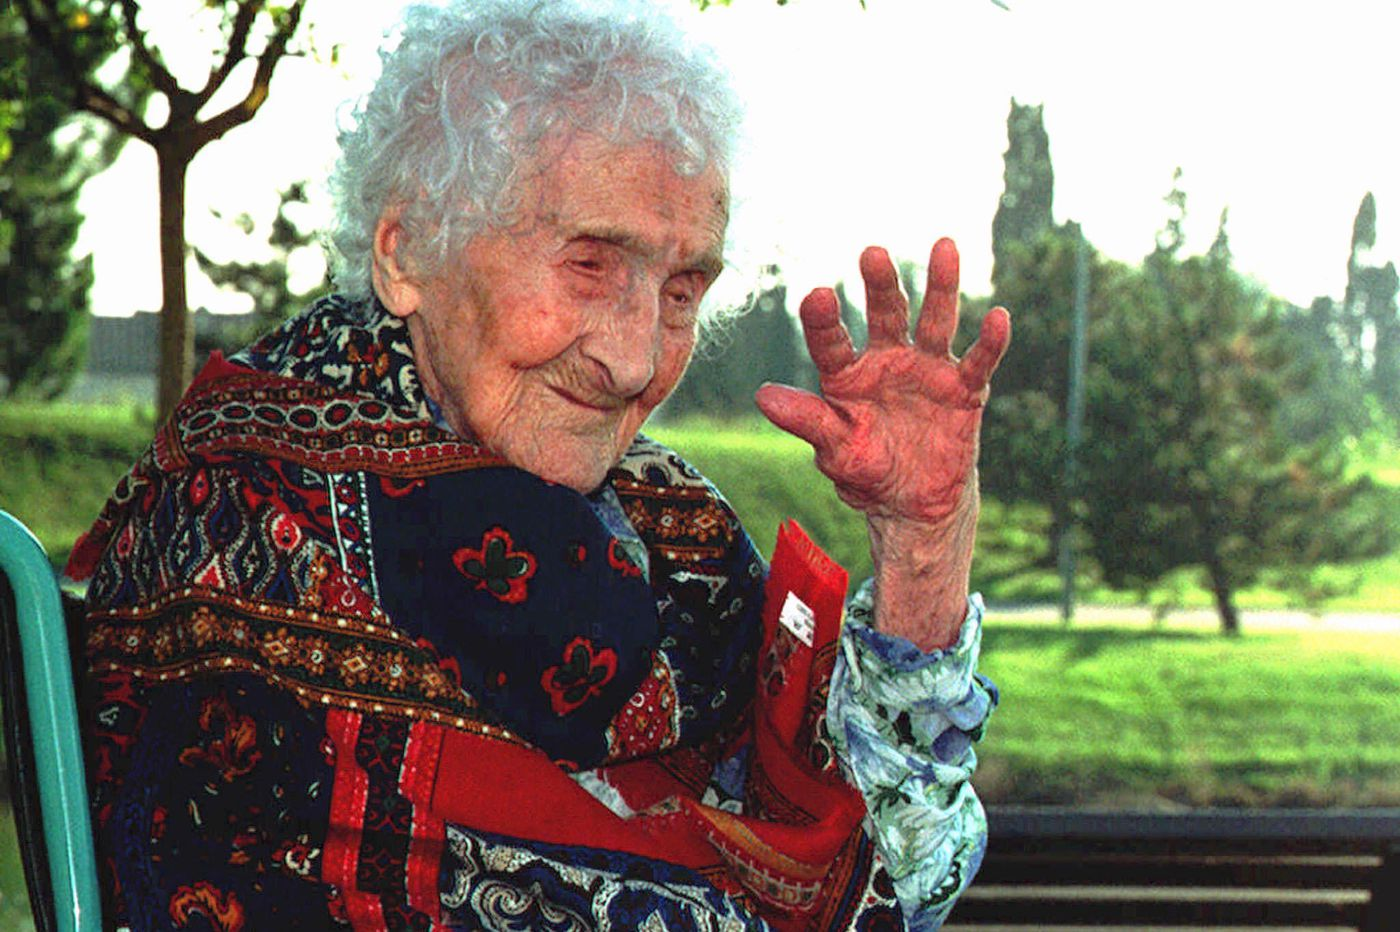 'World's oldest woman' was 122 when she died, but researcher says she was lying about age